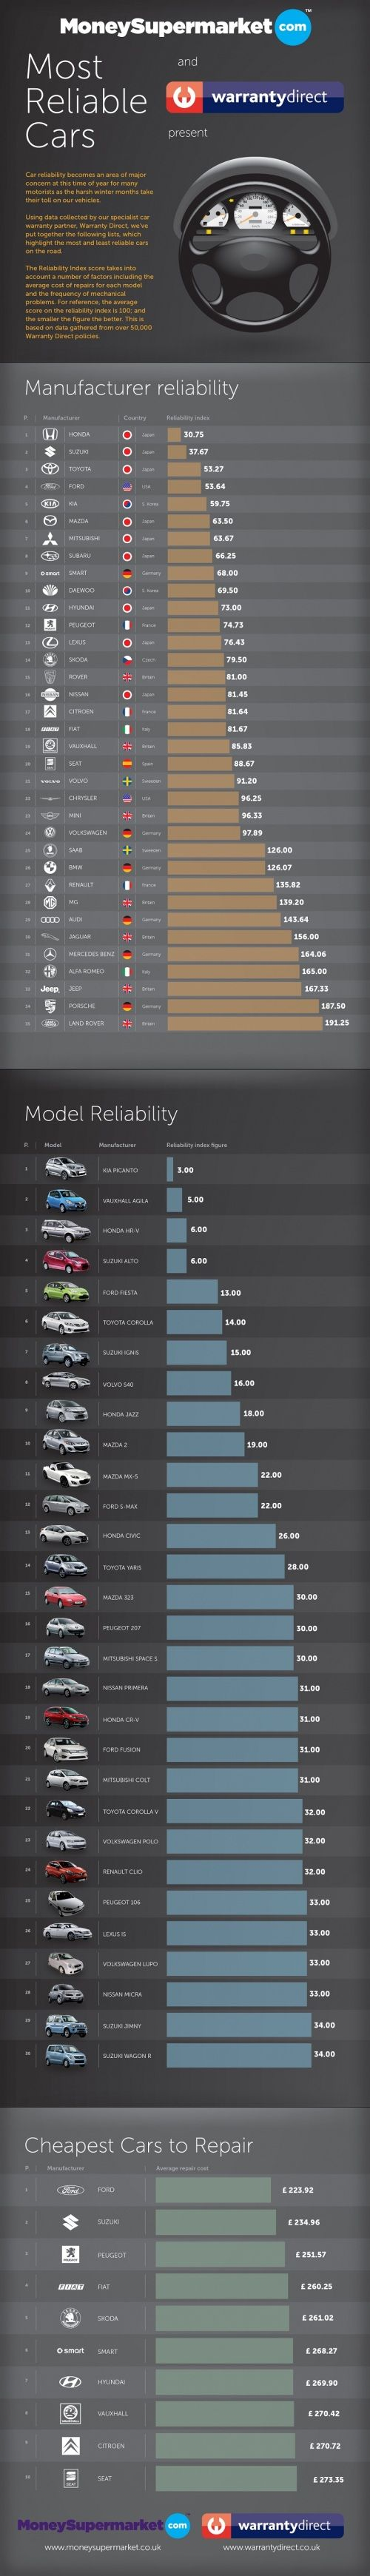 MOST RELIABLE CARS - http://www.coolinfoimages.com/infographics/most-reliable-cars/